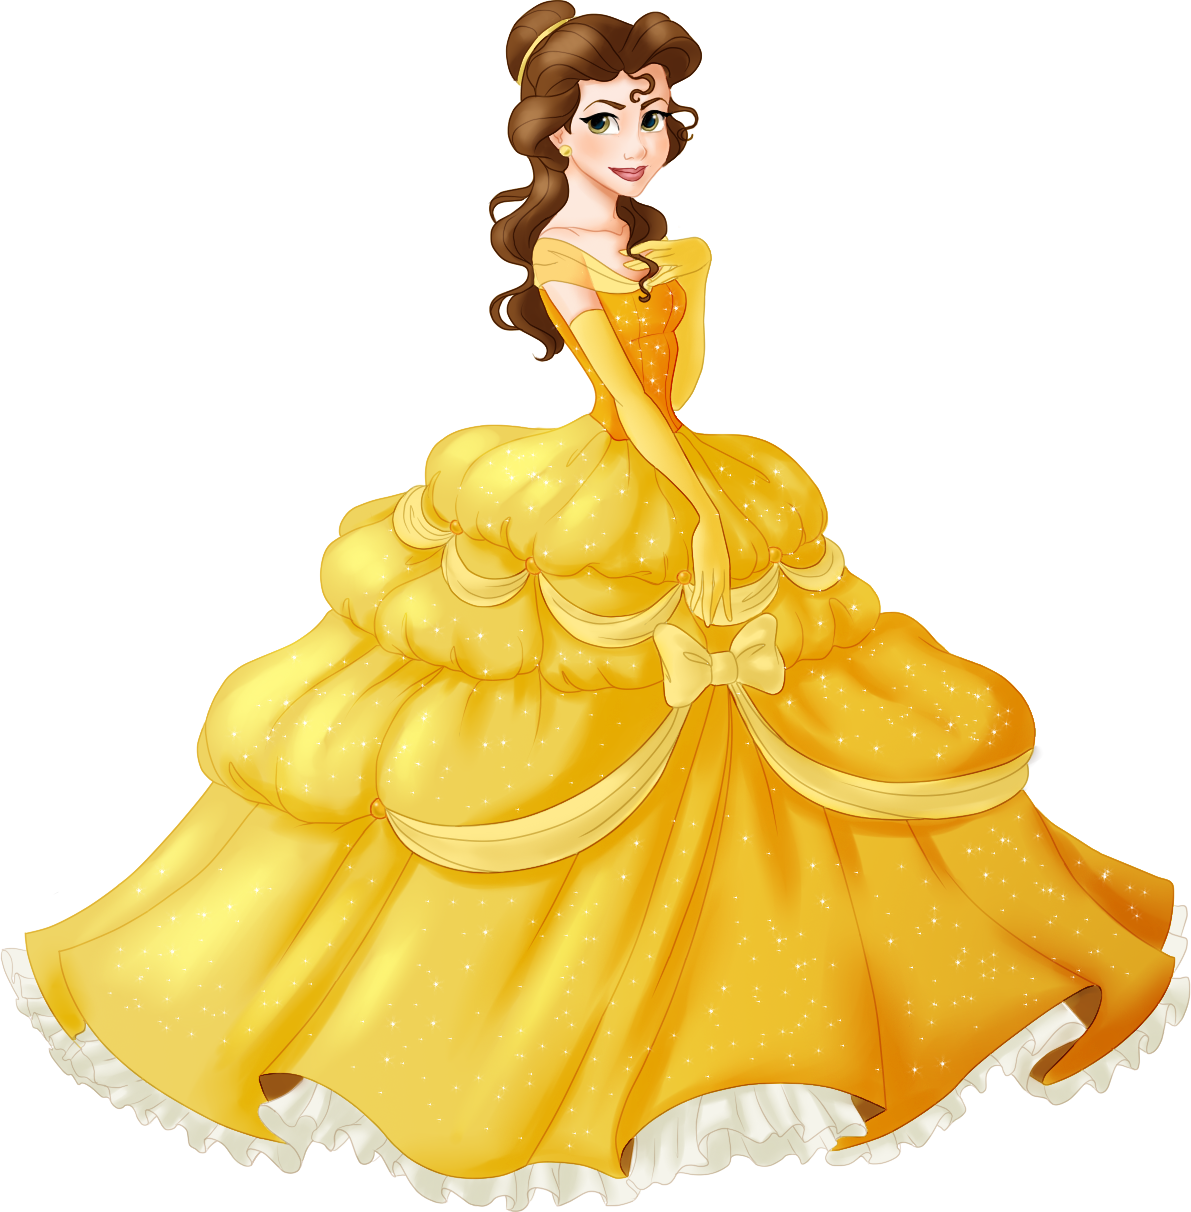 princesse disney belle. Black Bedroom Furniture Sets. Home Design Ideas